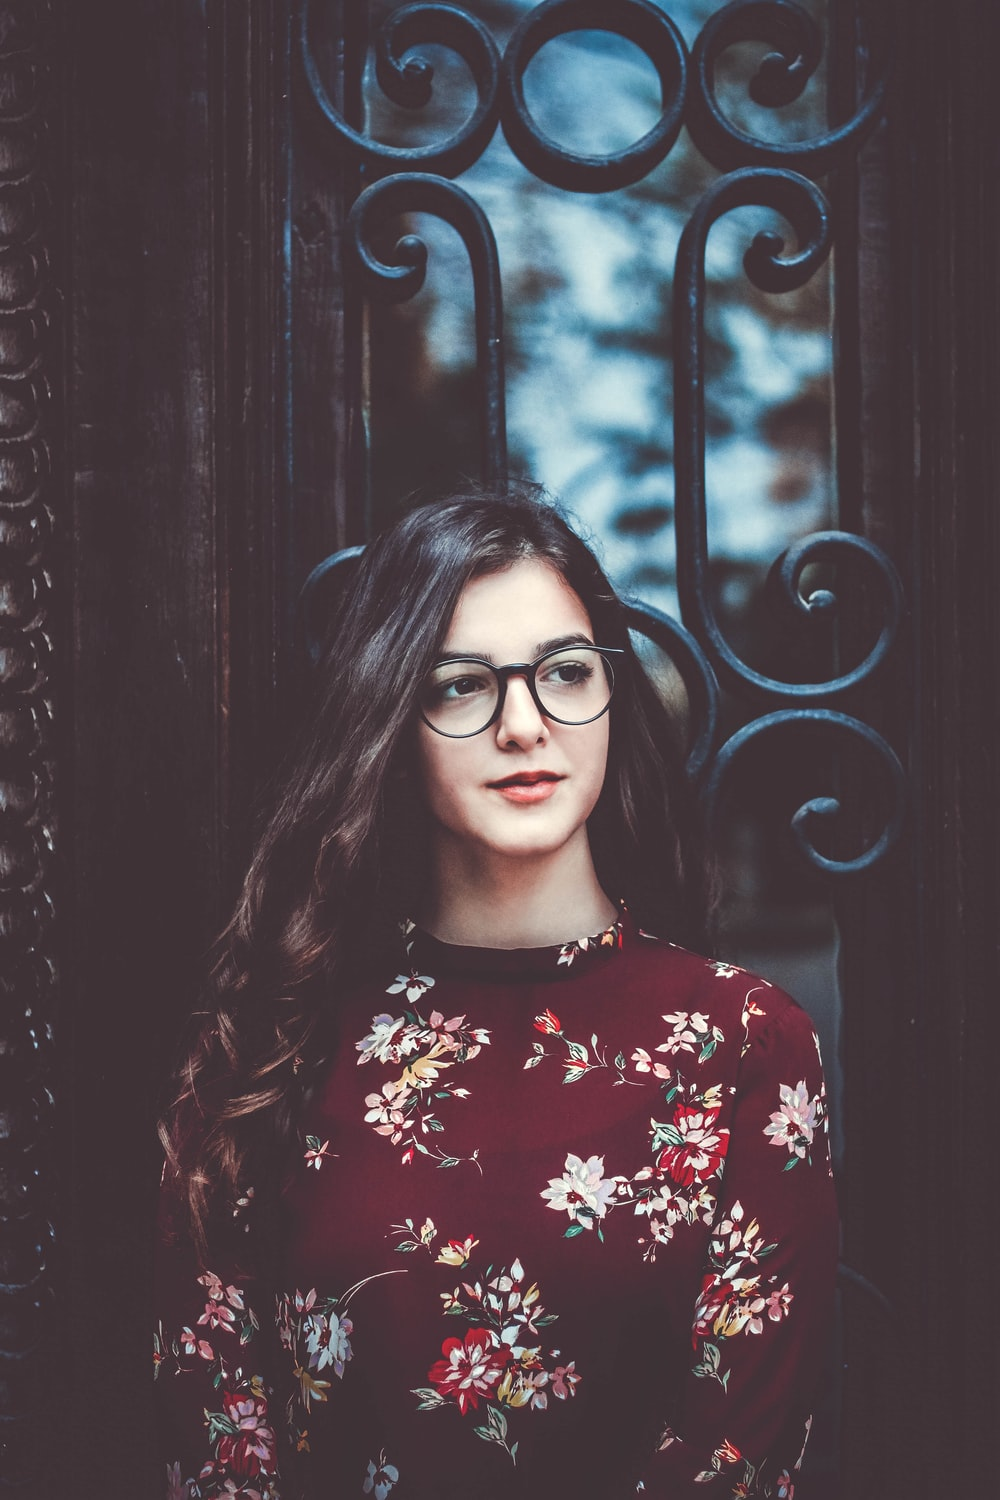 woman with eyeglasses and red dress